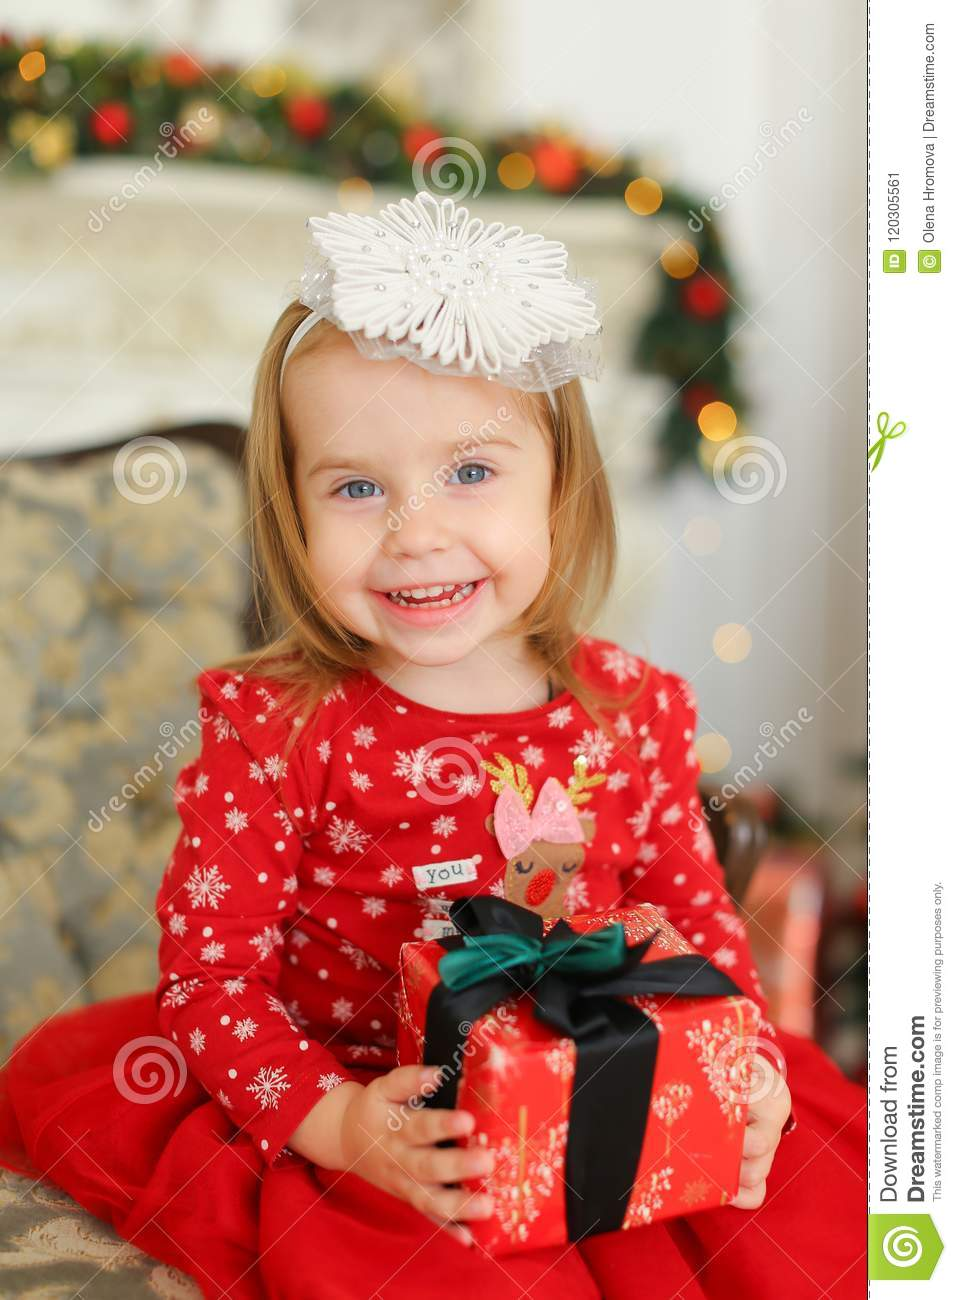 f8ed2a8cc Little Smiling Girl Wearing Red Dress